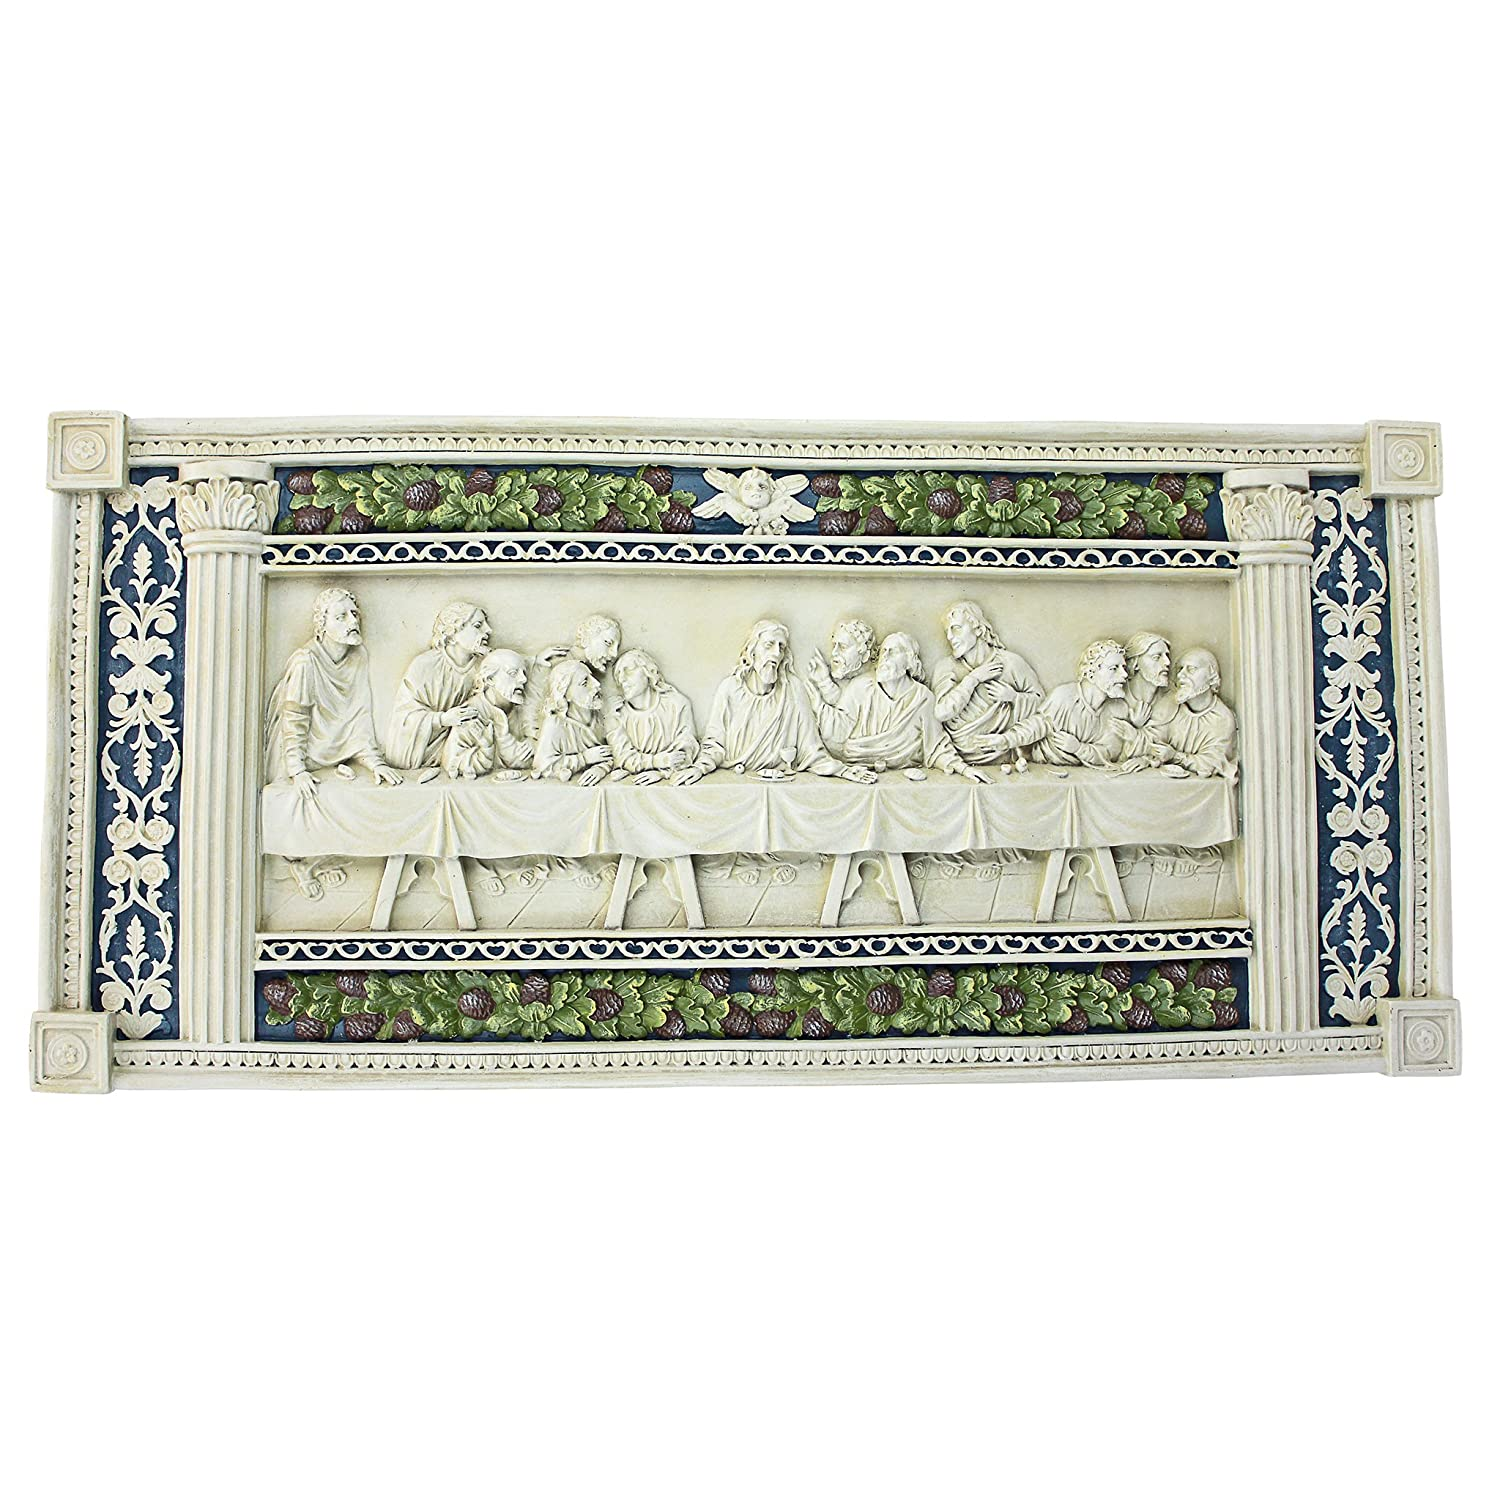 Design Toscano The Last Supper Religious Wall Frieze Sculpture, 58 cm, Polyresin, Antique Stone KY11448